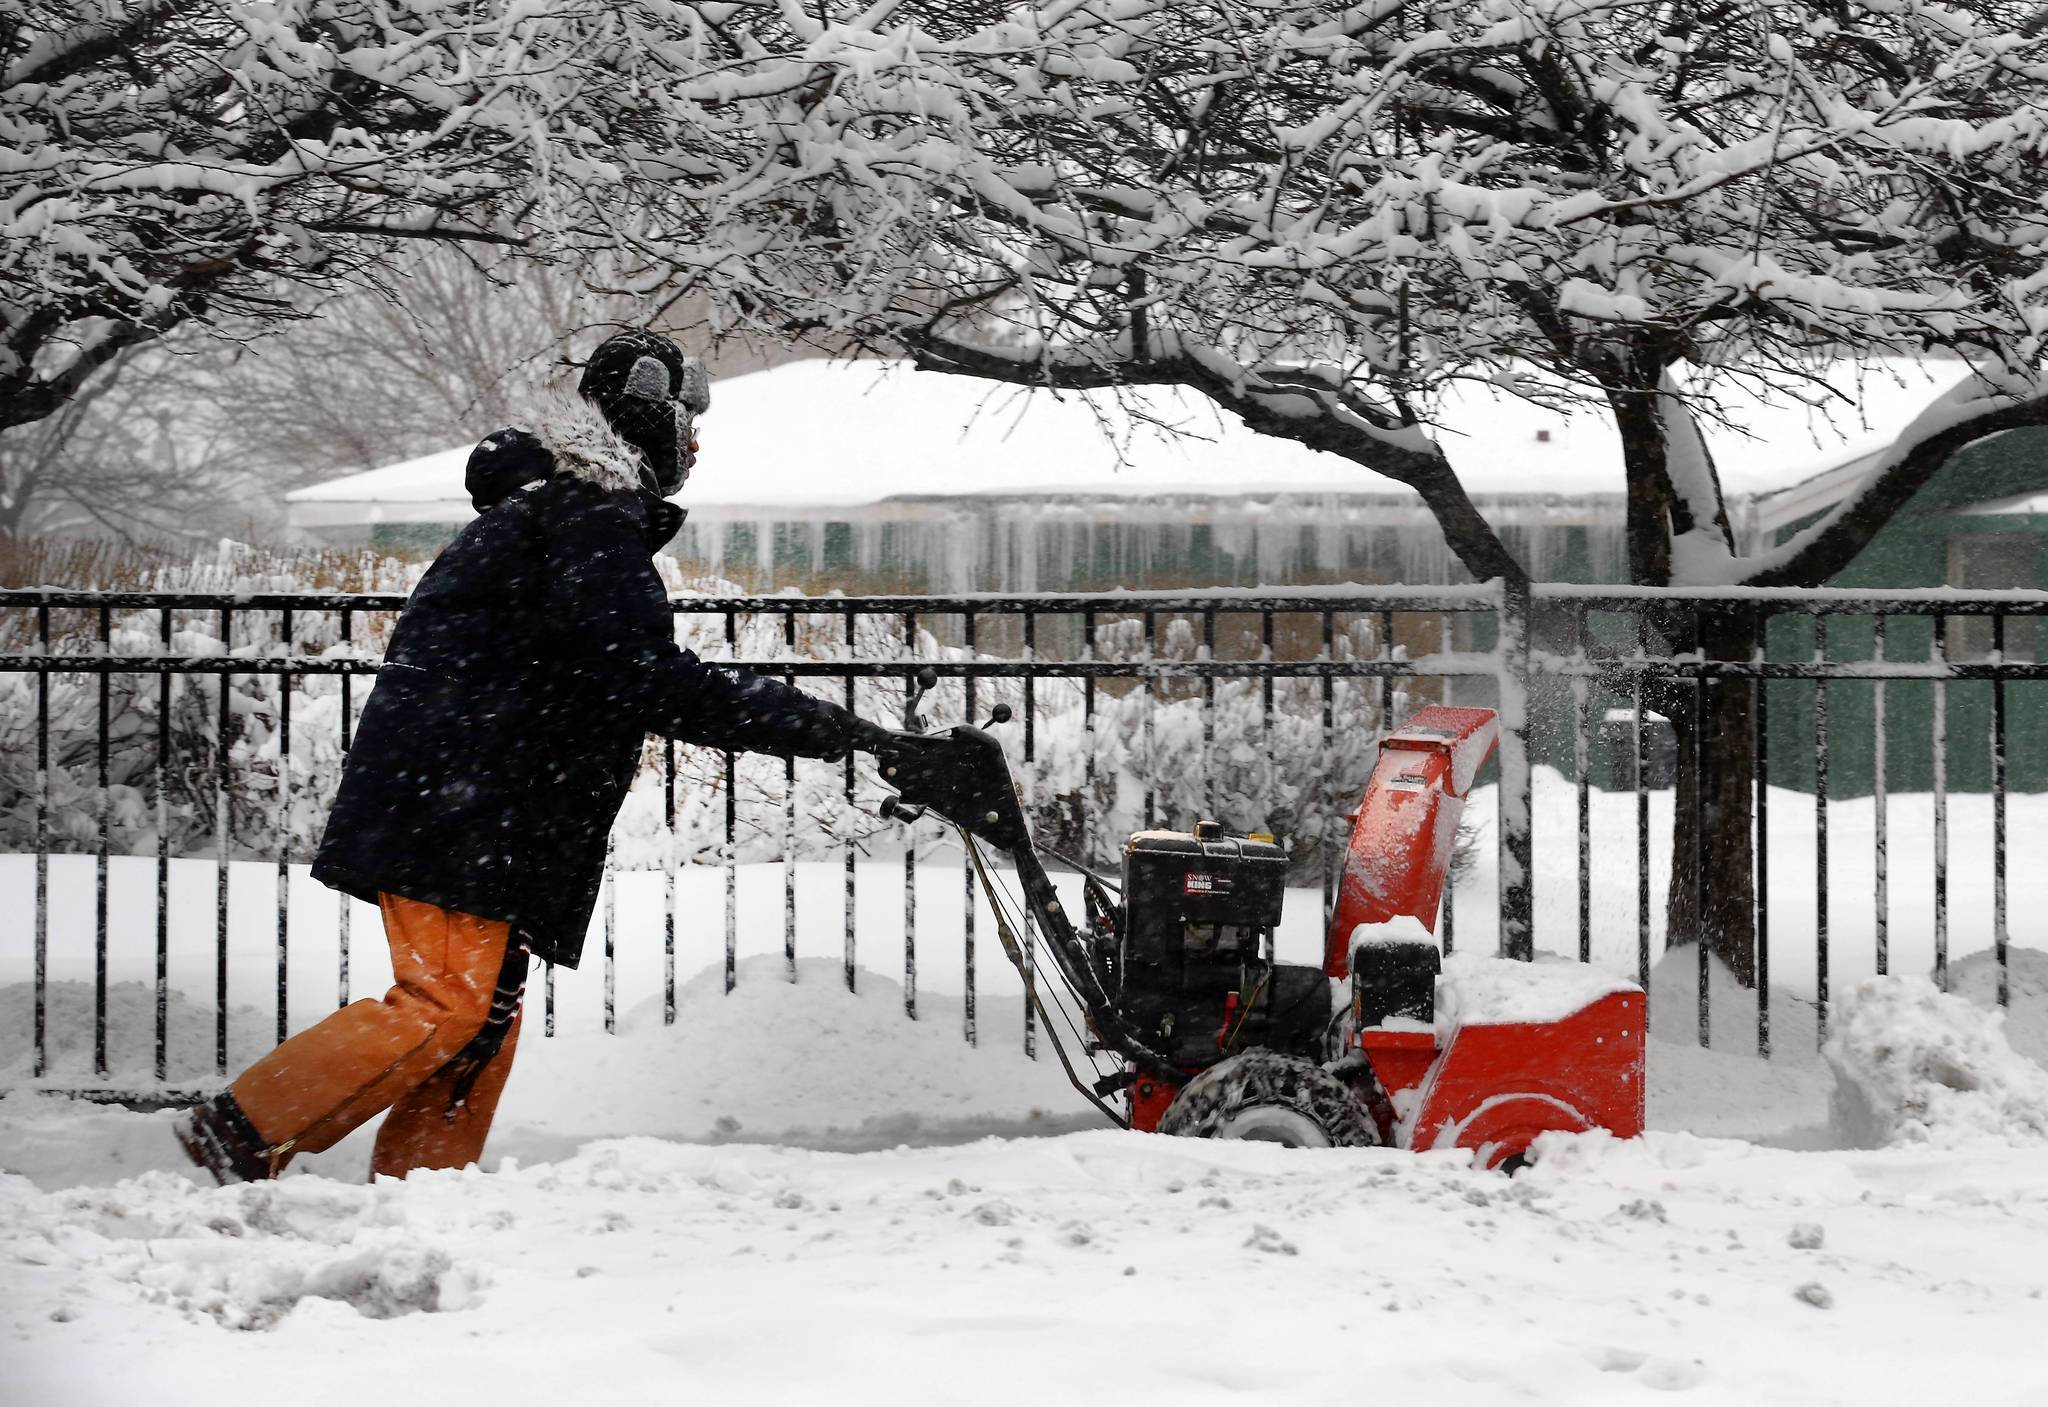 Ralph Richmond,, an engineer at Otis Elementary School, at 525 N. Armour St, Chicago, in Chicago uses a snow blower to get the sidewalks ready for students.